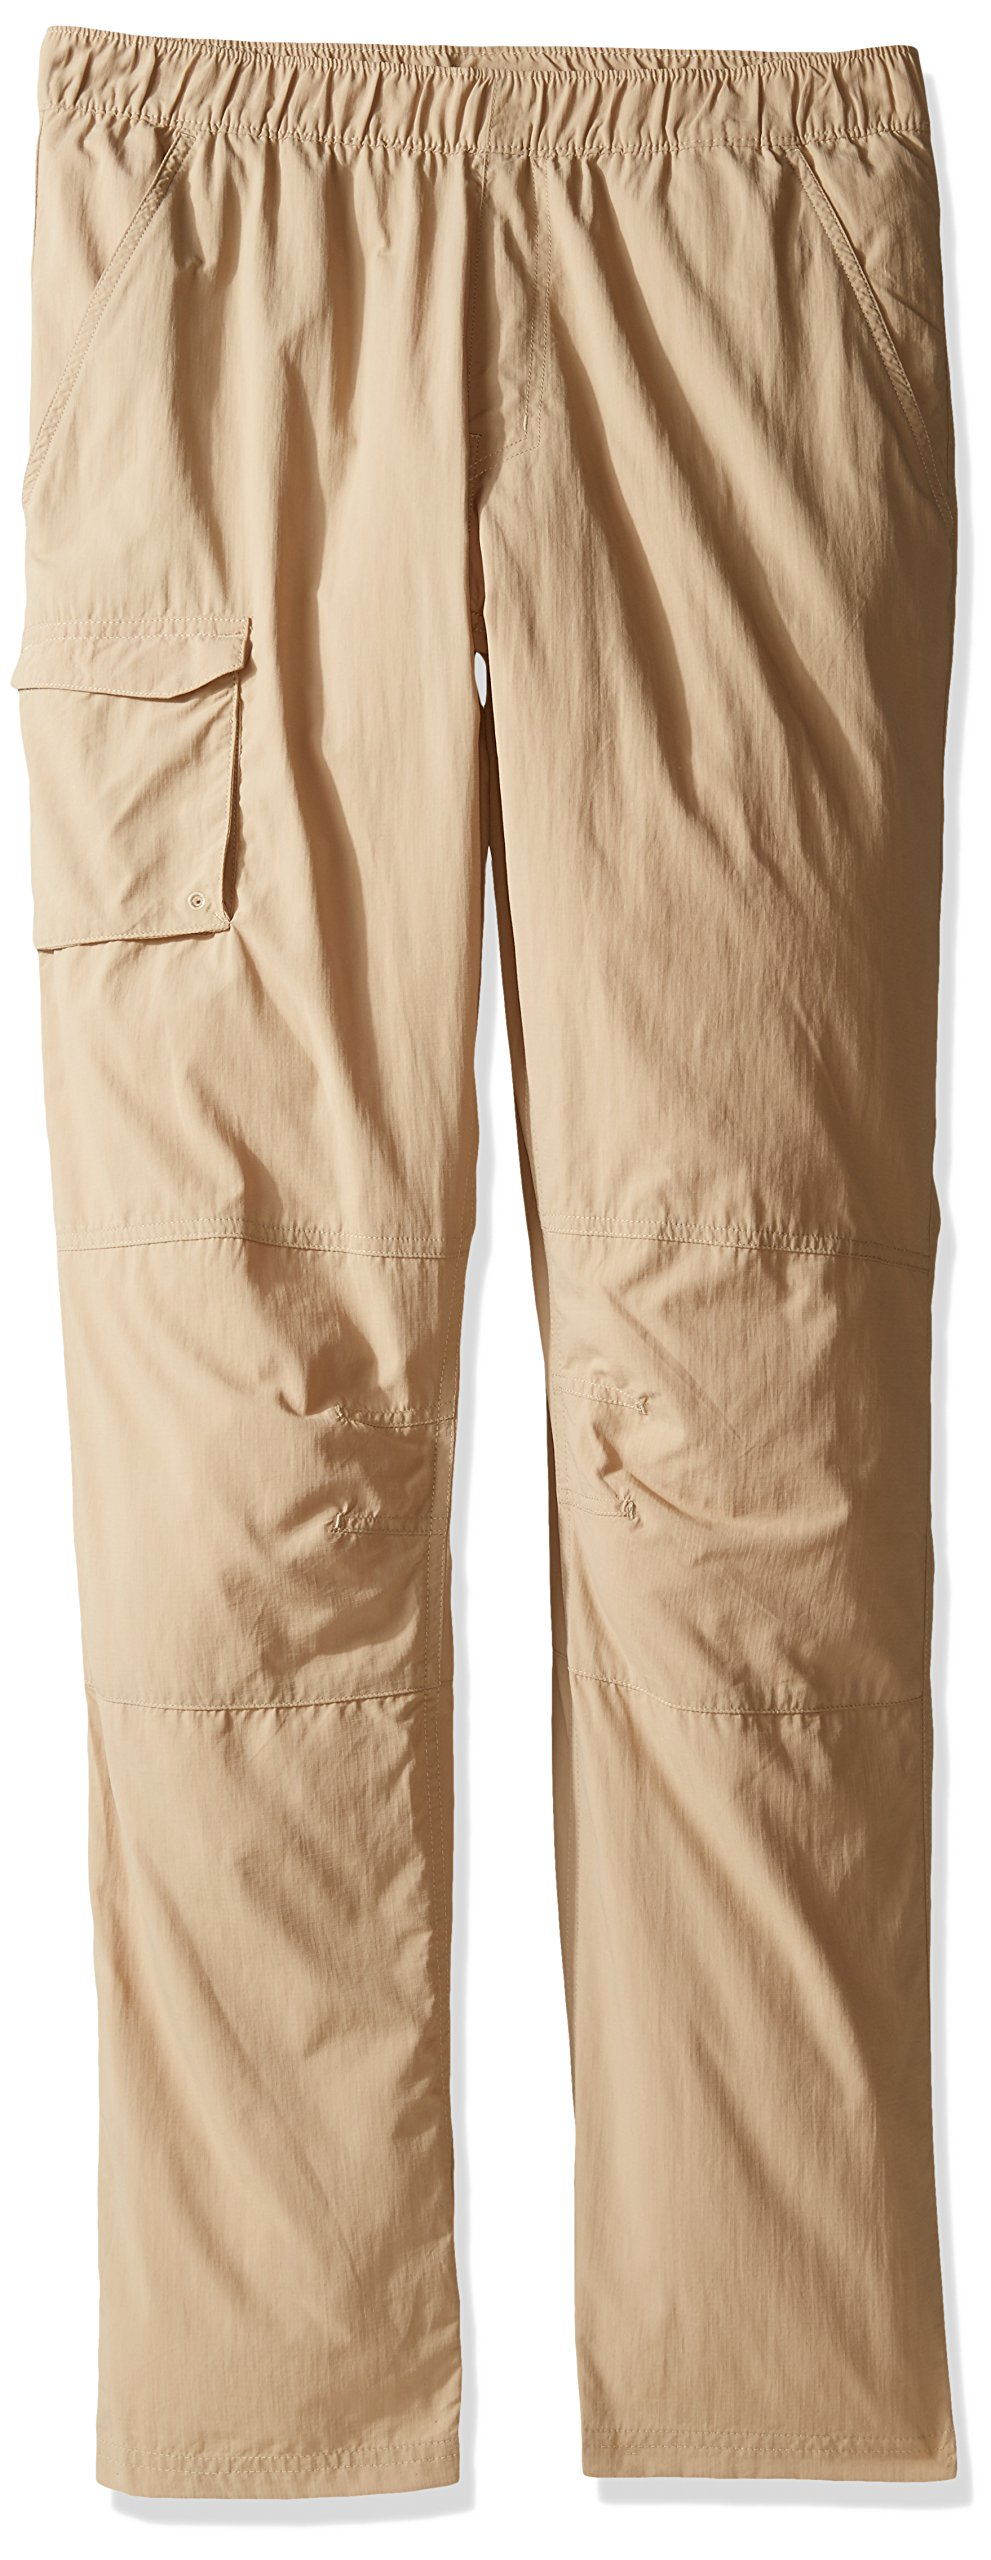 Columbia Youth Boy's Silver Ridge Pull-On Pant, British Tan, X-Large by Columbia